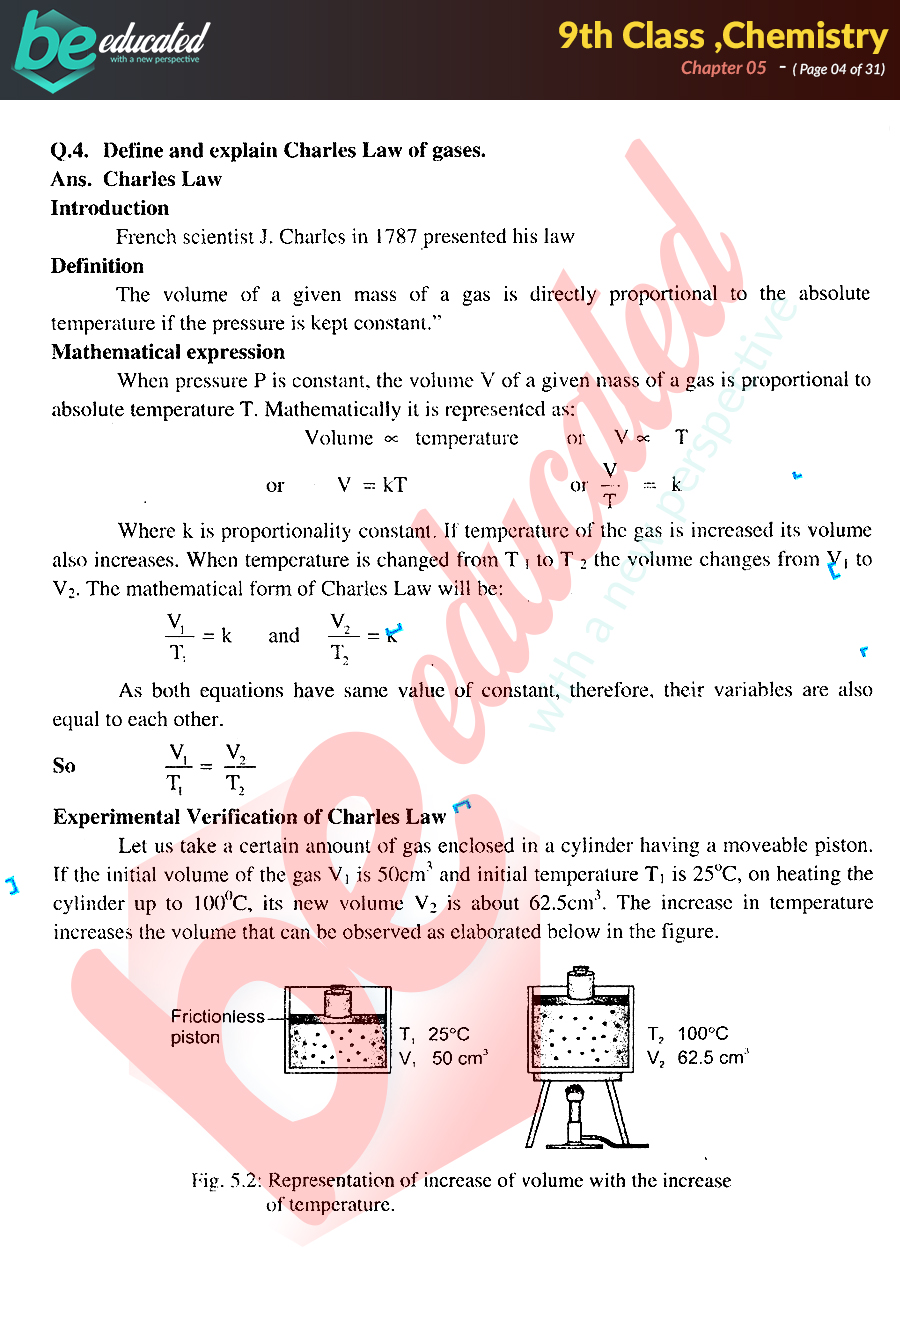 Chapter 5 Chemistry 9th Class Notes - Matric Part 1 Notes